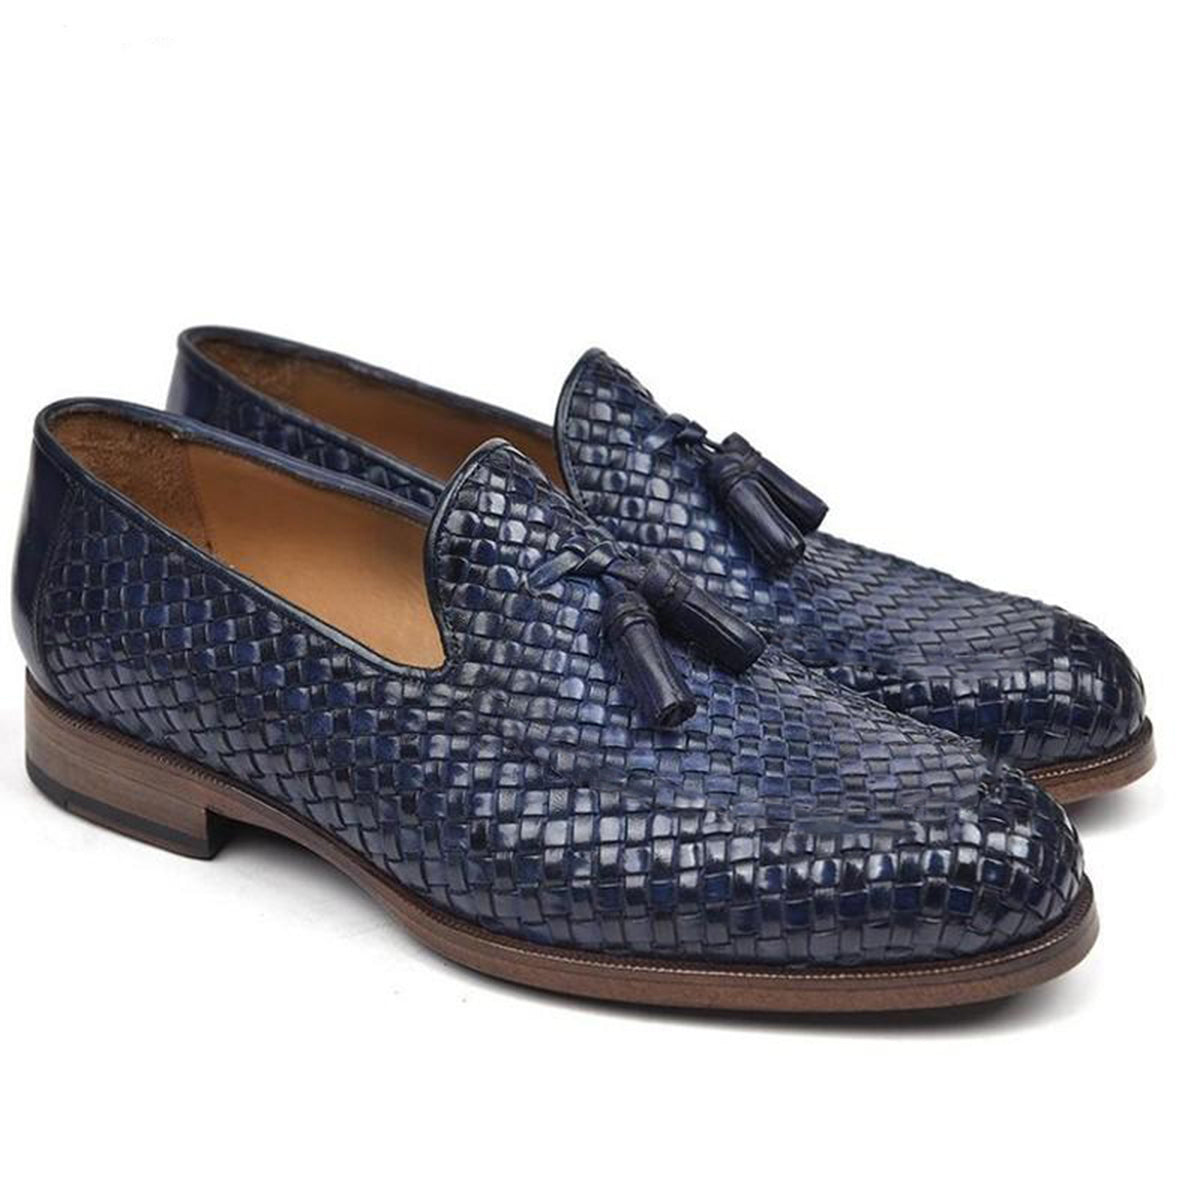 Navy Blue Patina Finish Braided Woven Leather Formal Tassel Loafer Slip On Shoes for Men with Leather Sole. Goodyear Welted Construction Available.